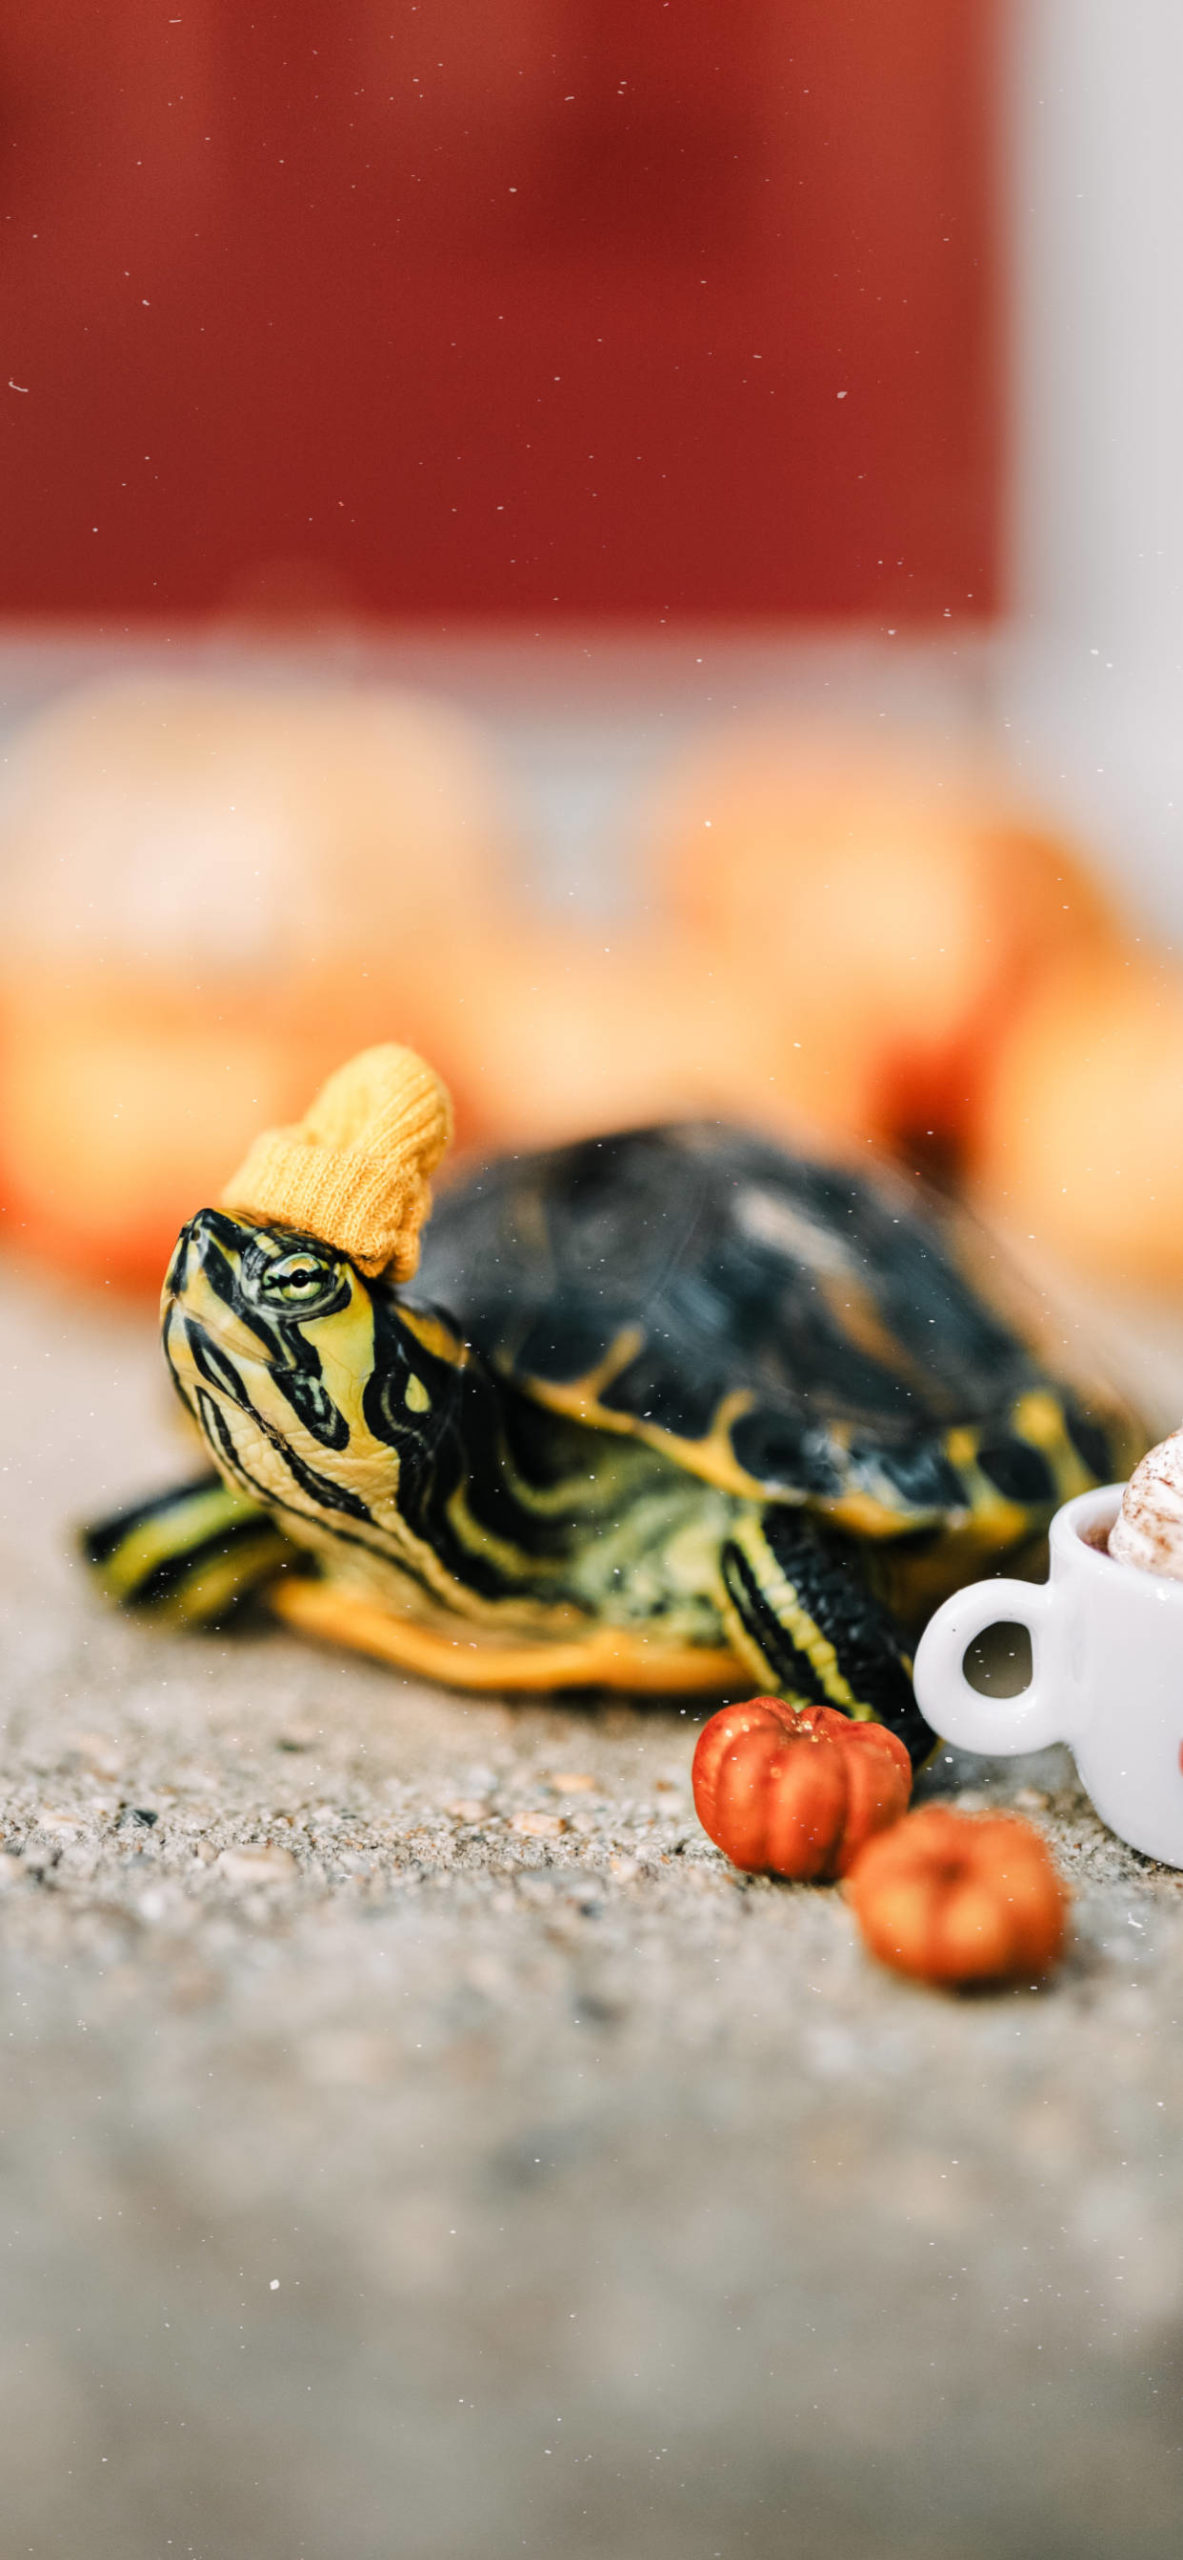 iPhone wallpapers turtle pumpkin hat scaled Turtle